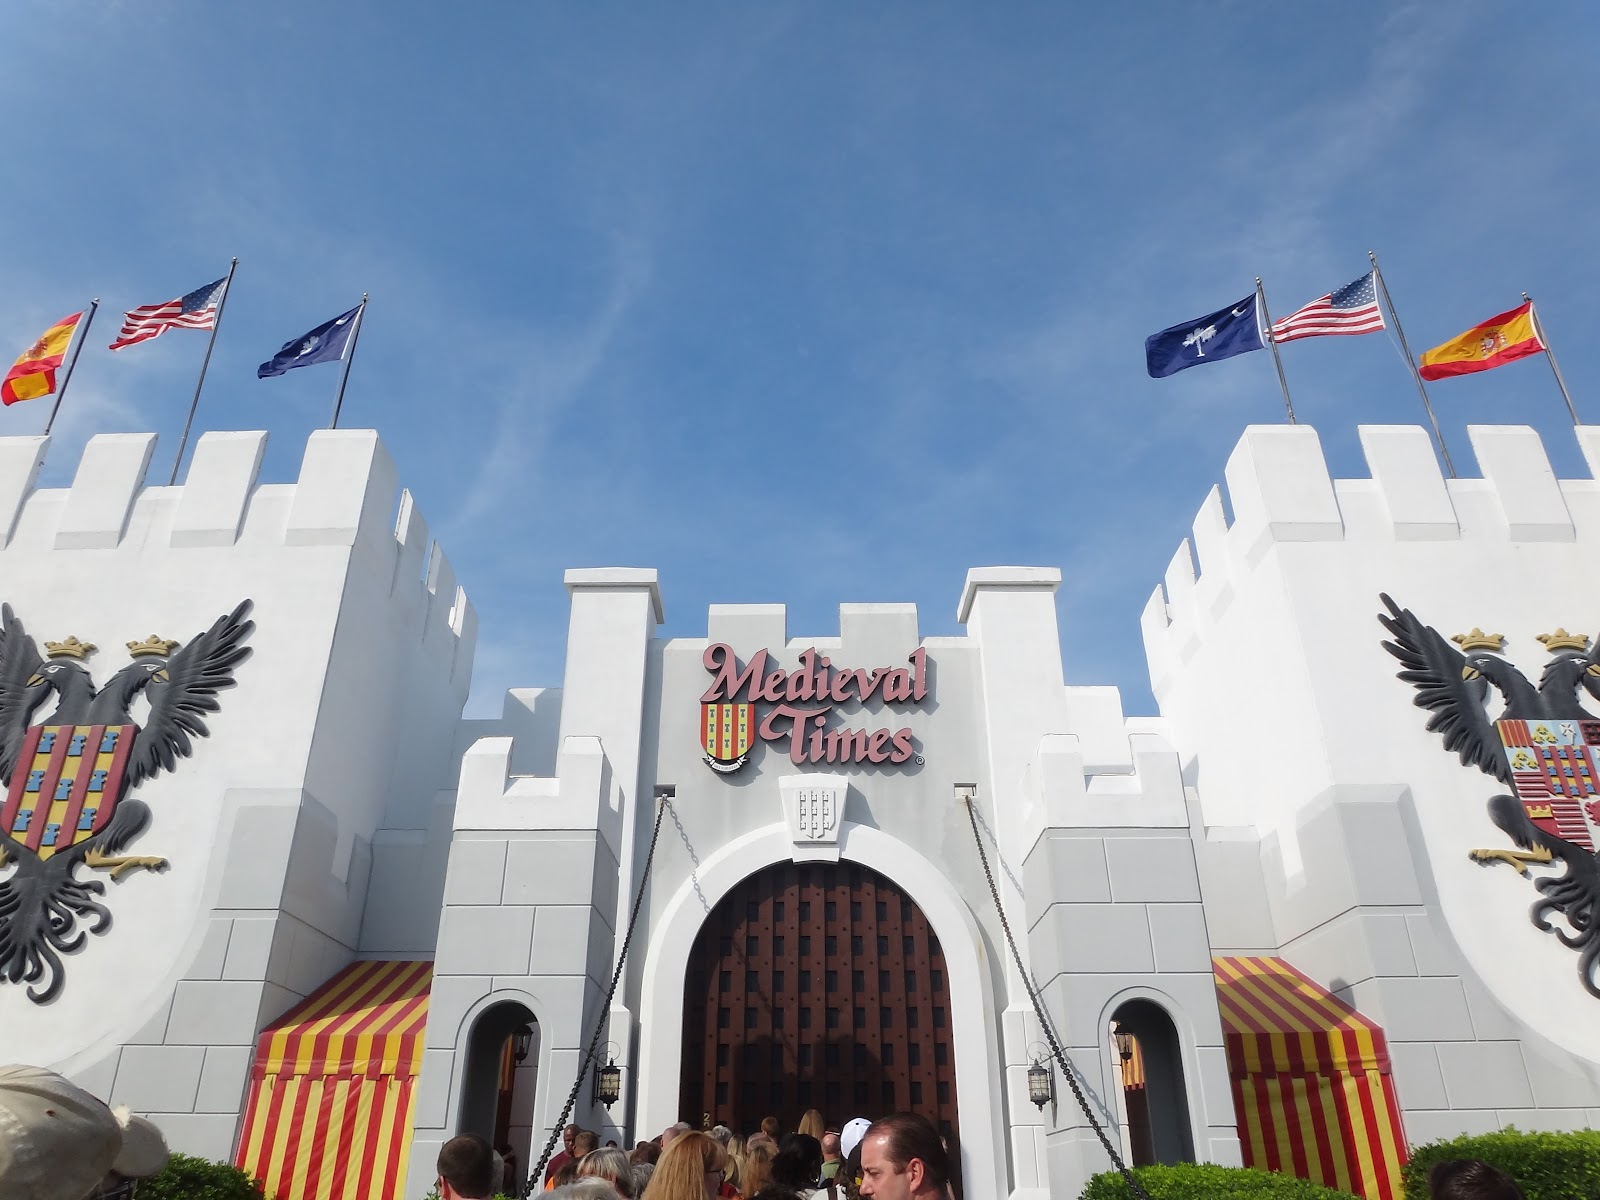 For a fun family experience in south Myrtle Beach SC, check out Medieval Times Dinner & Tournament. Take a voyage back to Medieval Spain where you will witness a magnificent Tournament of Knights in which you will see six noble knights battle to be a champion, and fight for the heart of Princess Catalina and the honor of the king/5.